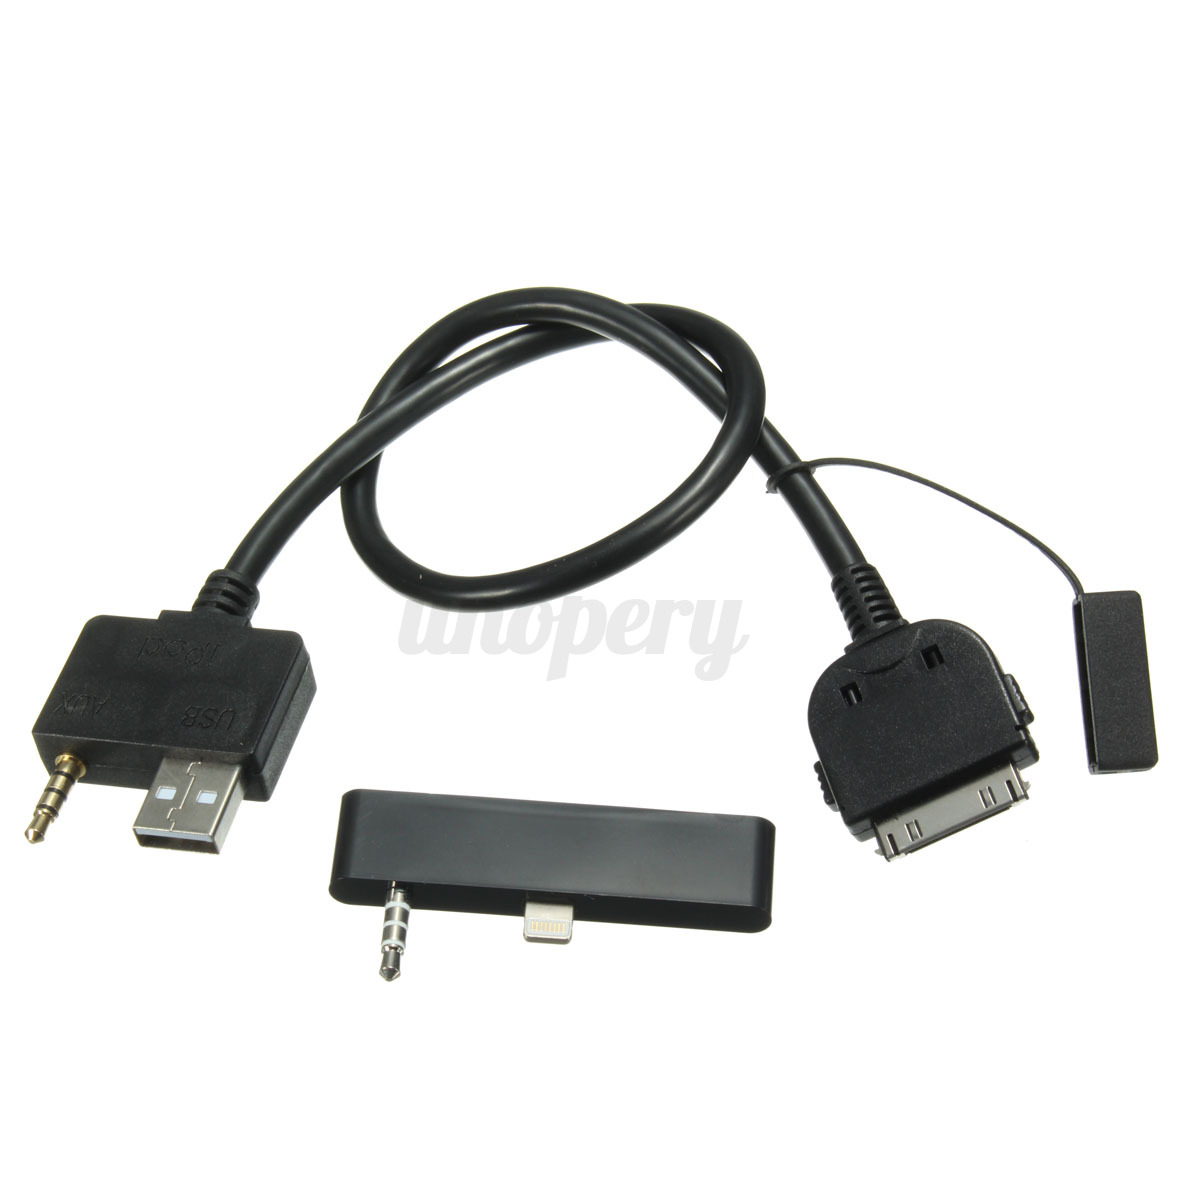 Kia Cable For Iphone